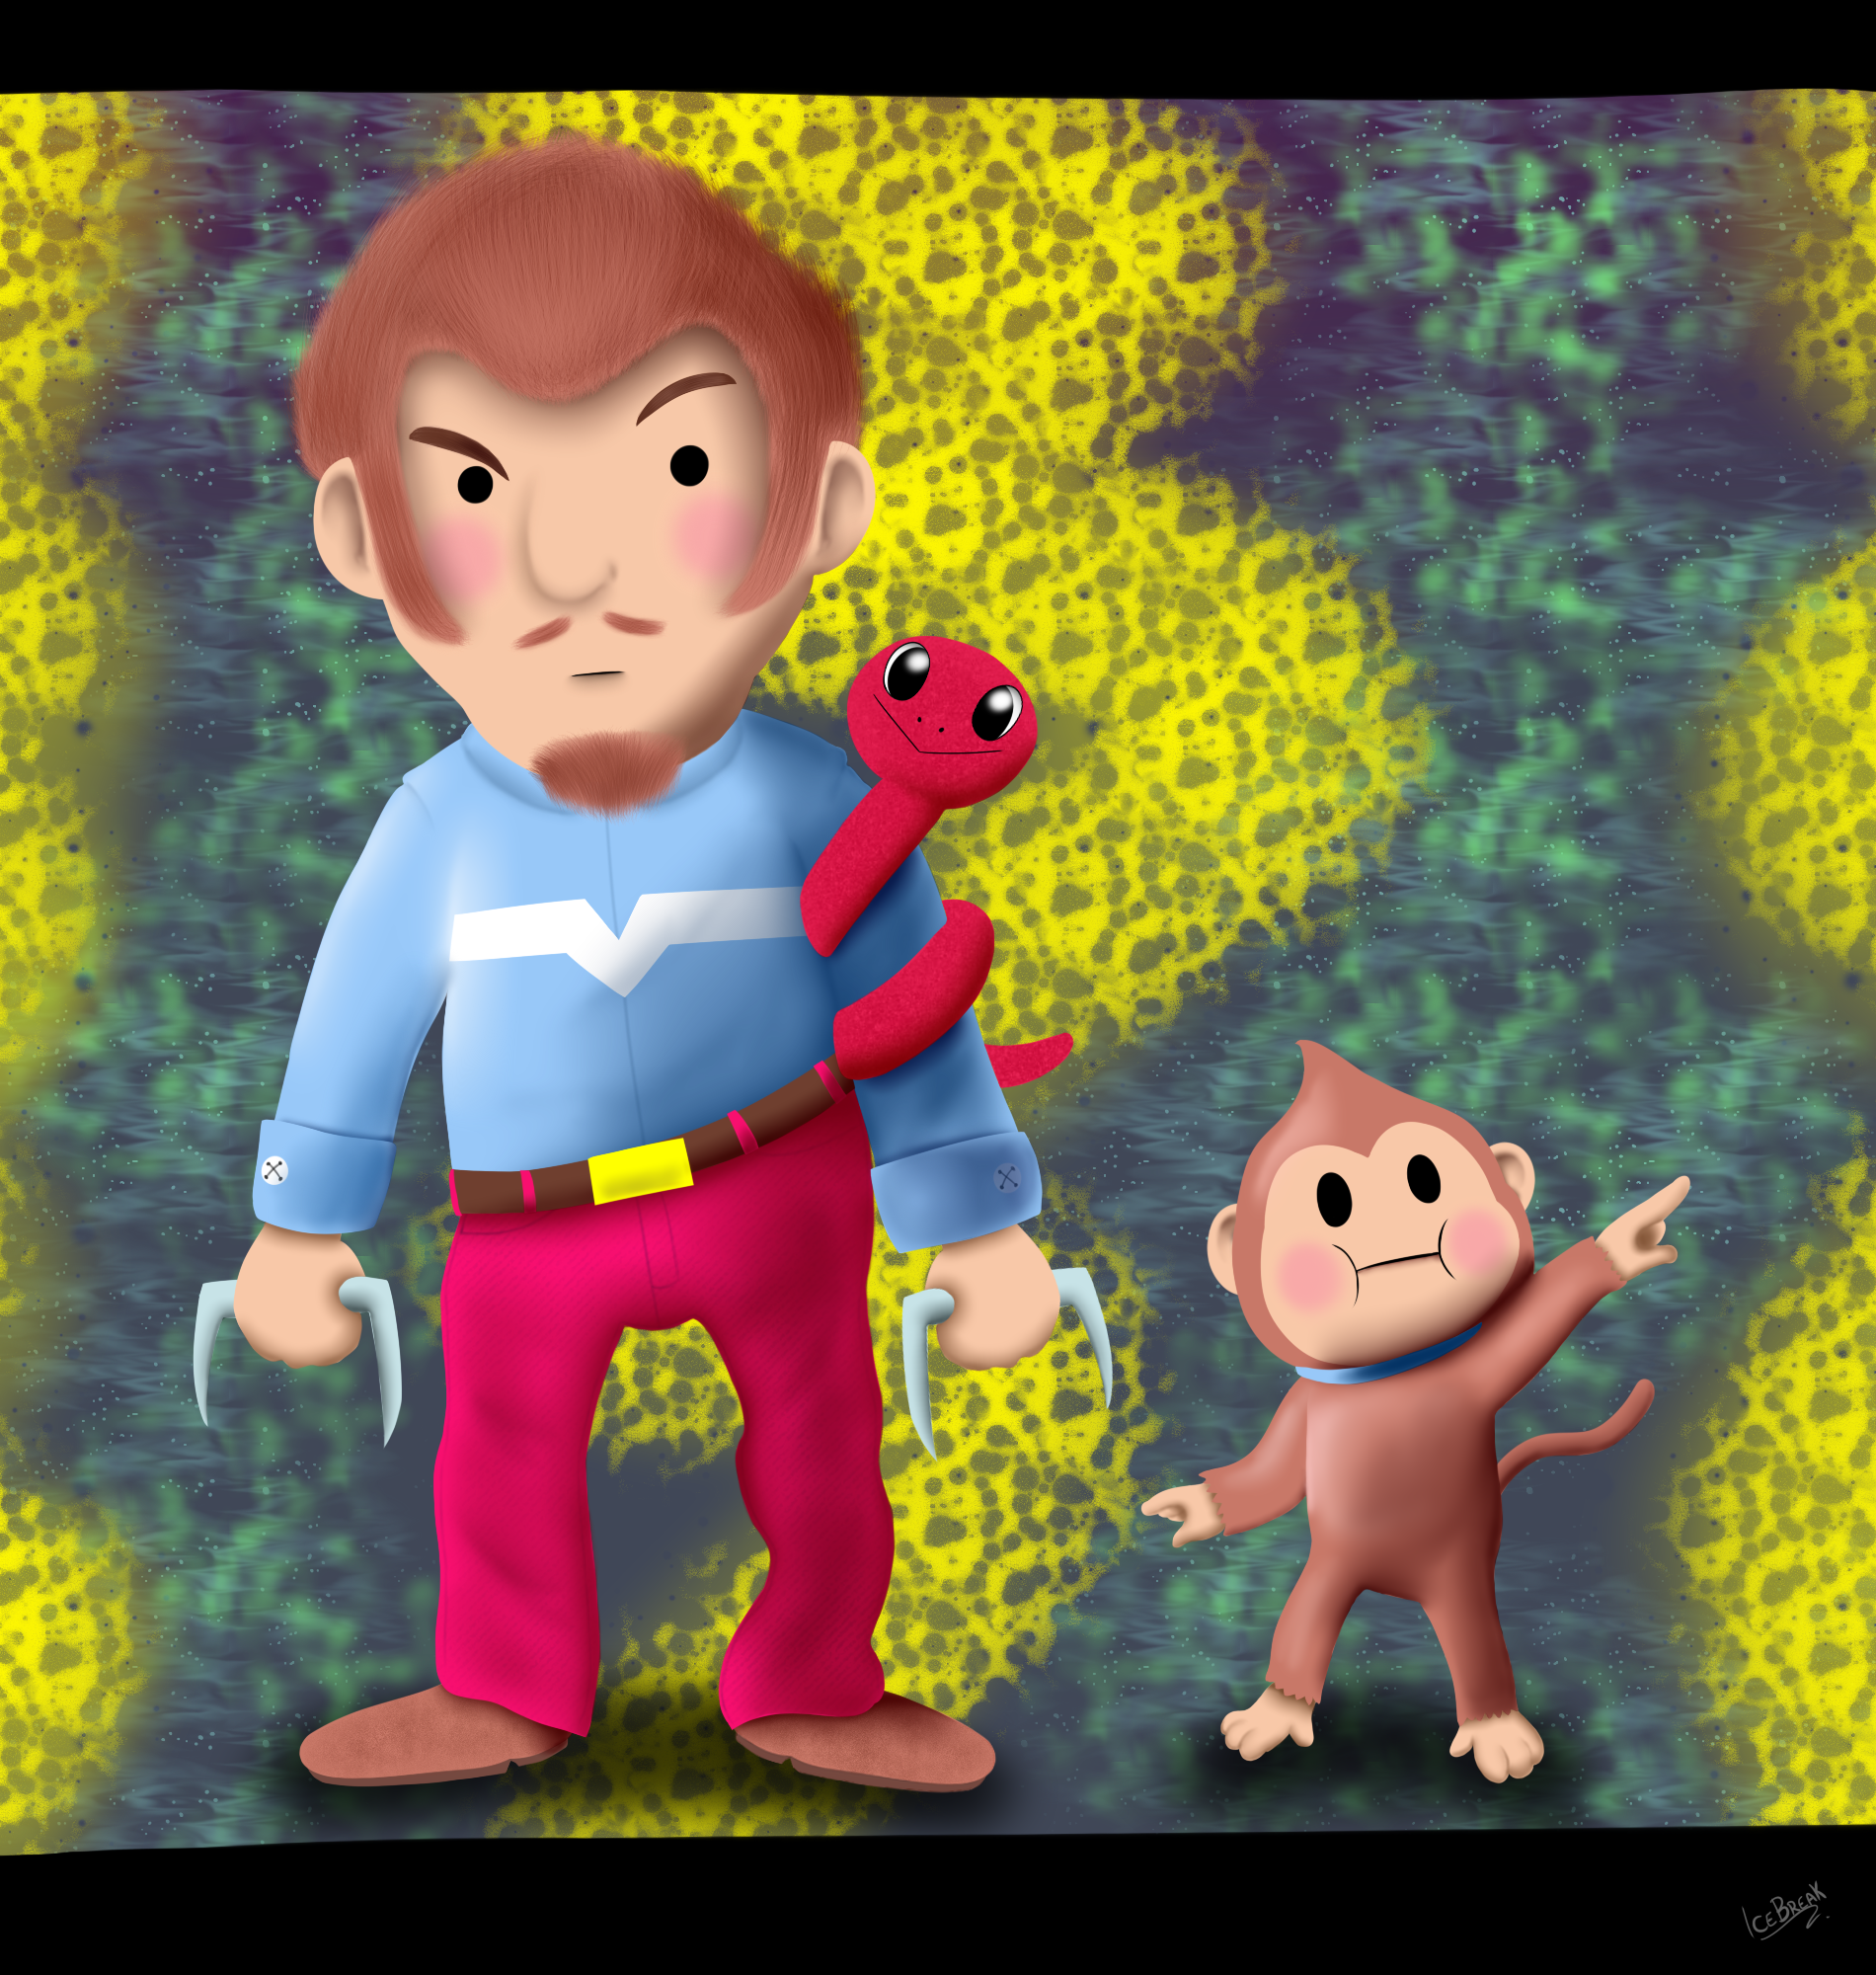 Mother 3 - Duster by IceBreak23 on Newgrounds